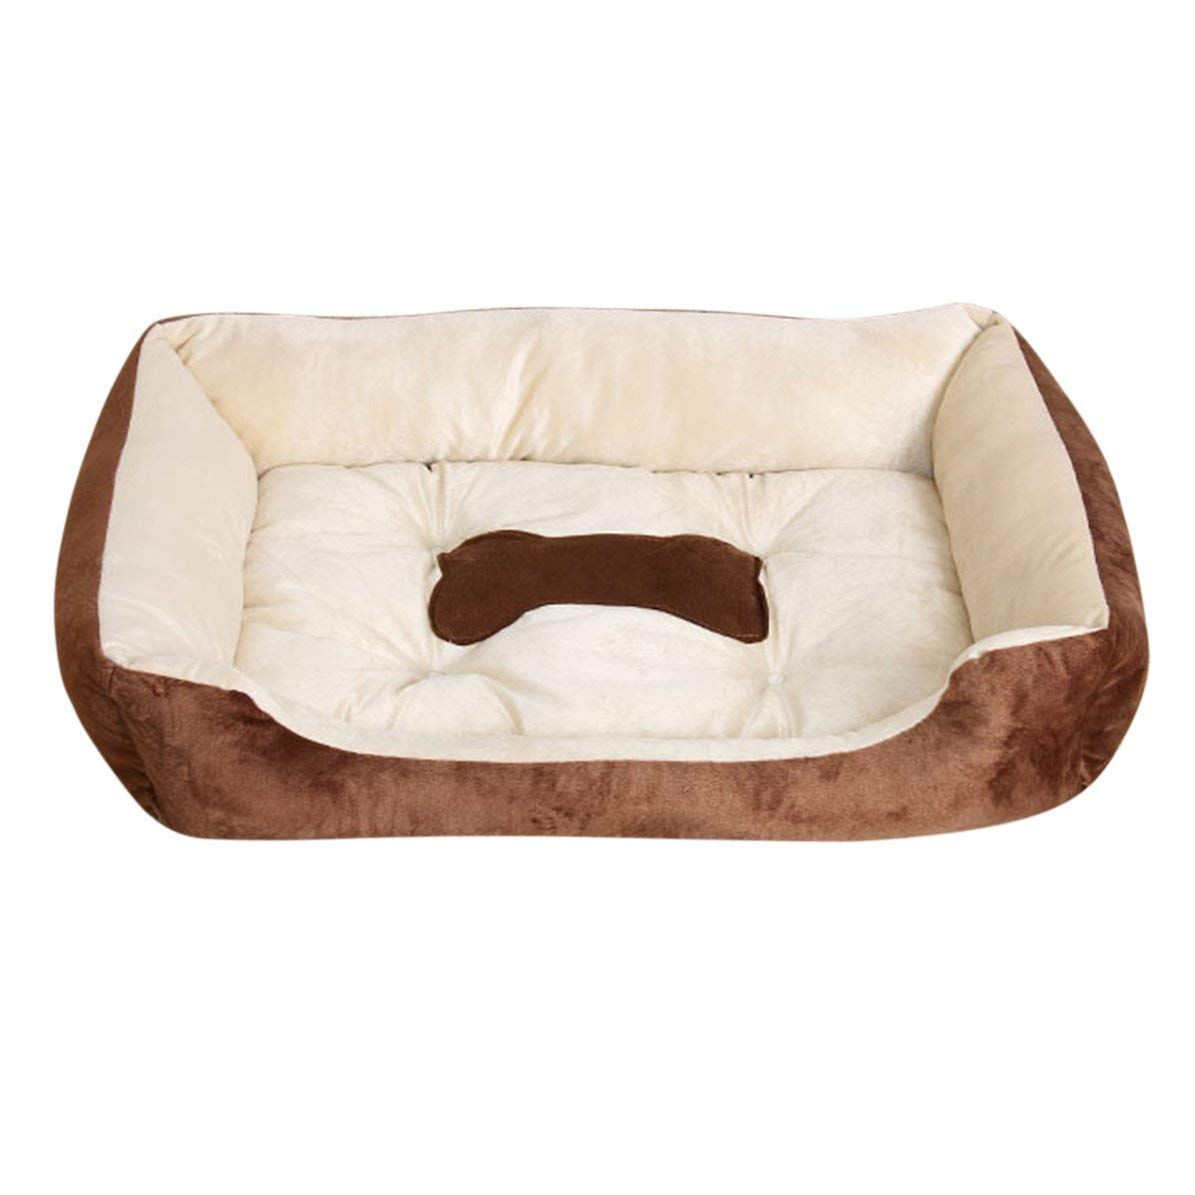 Autumn Winter Pets Dog Bed Warming Plush Dog House High Elastic PP Cotton Pet Nest Dog Warm Nest for Cat Puppy Pet Supplies